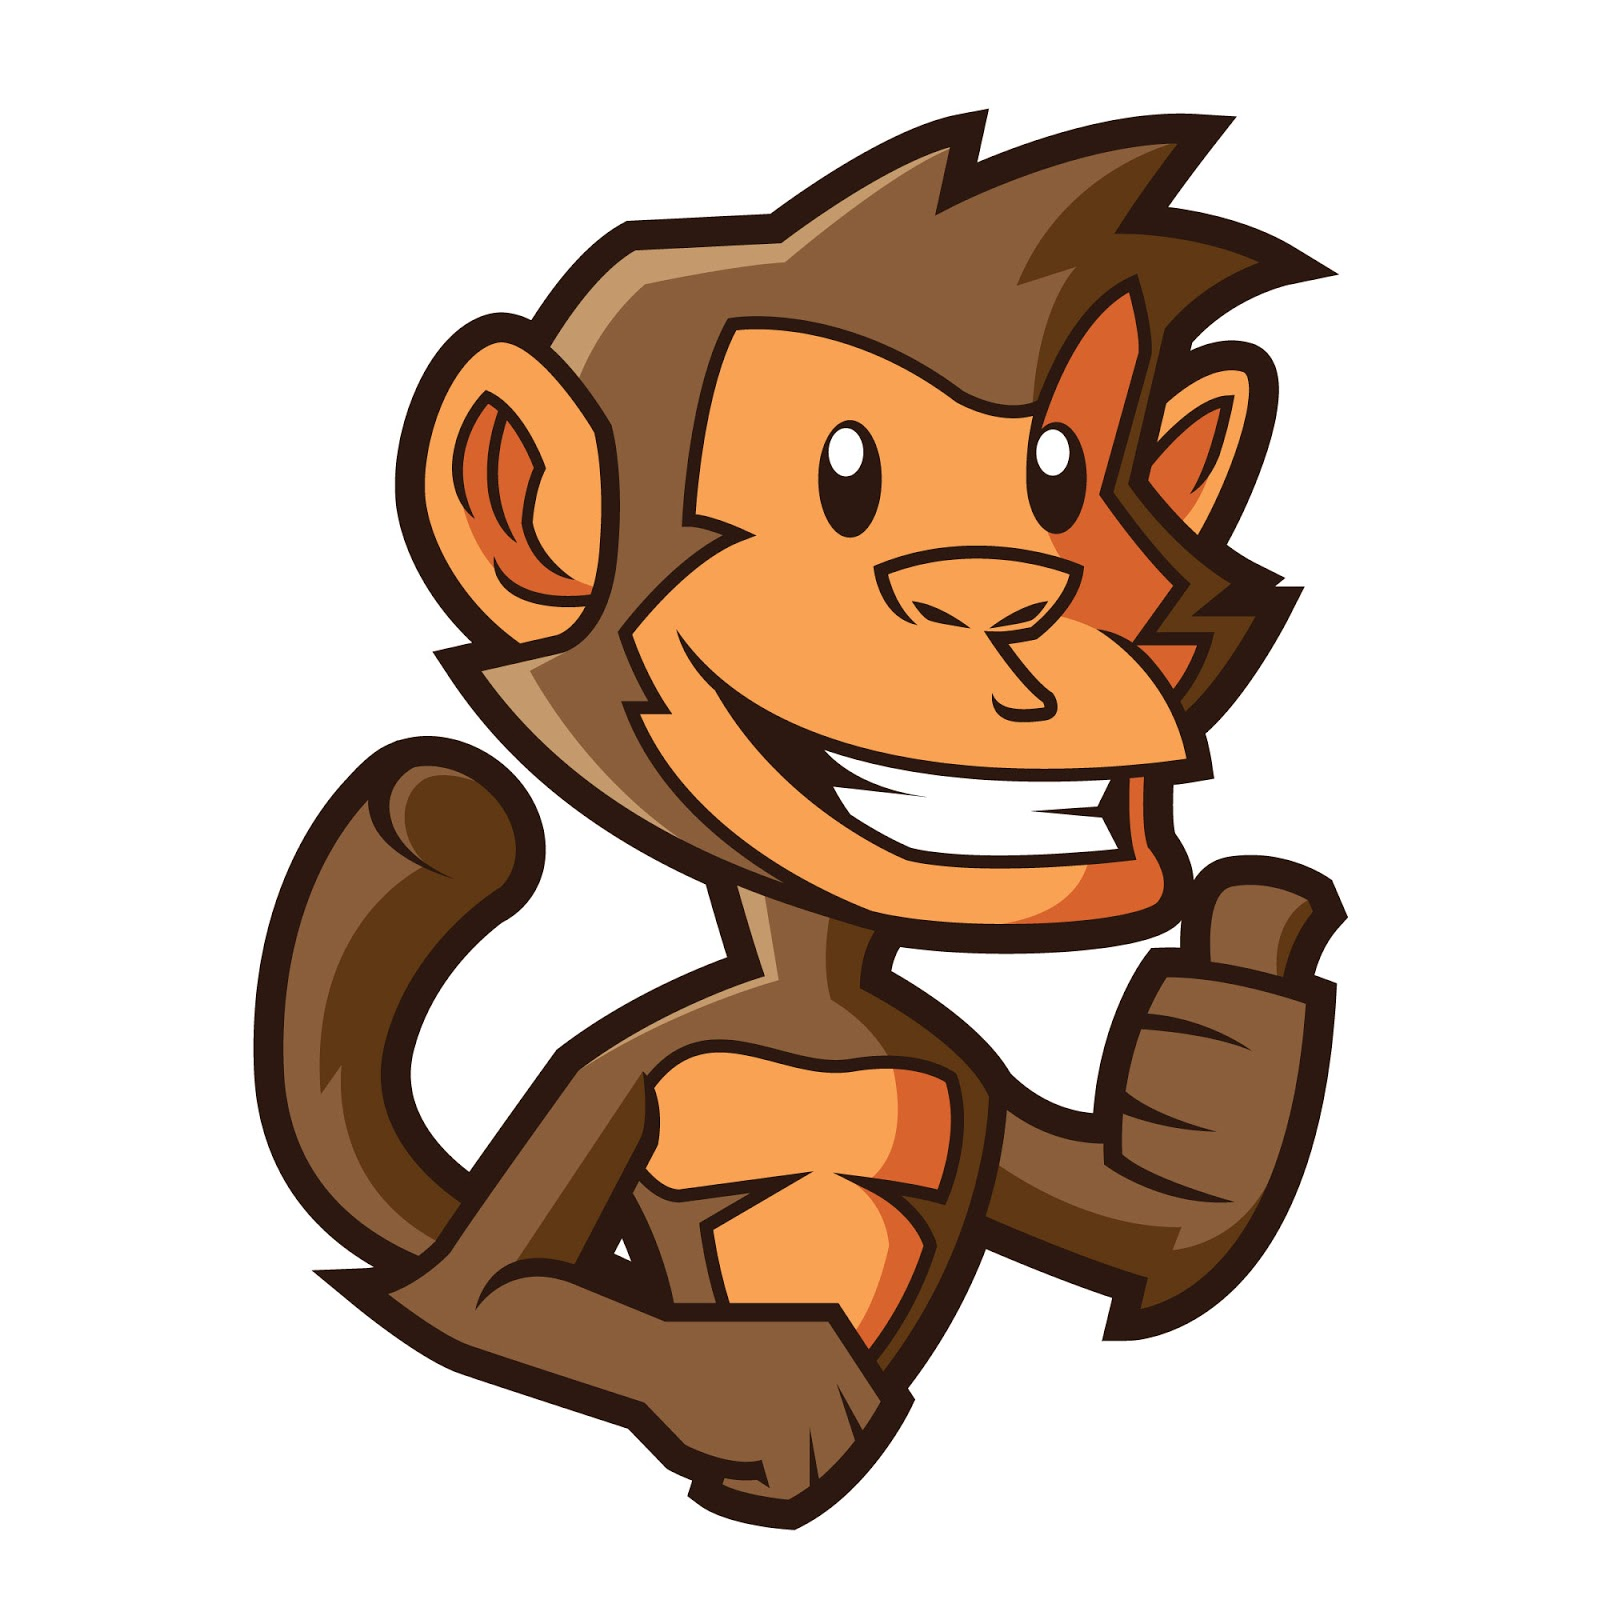 Monkey Mascot Logo Free Download Vector CDR, AI, EPS and PNG Formats